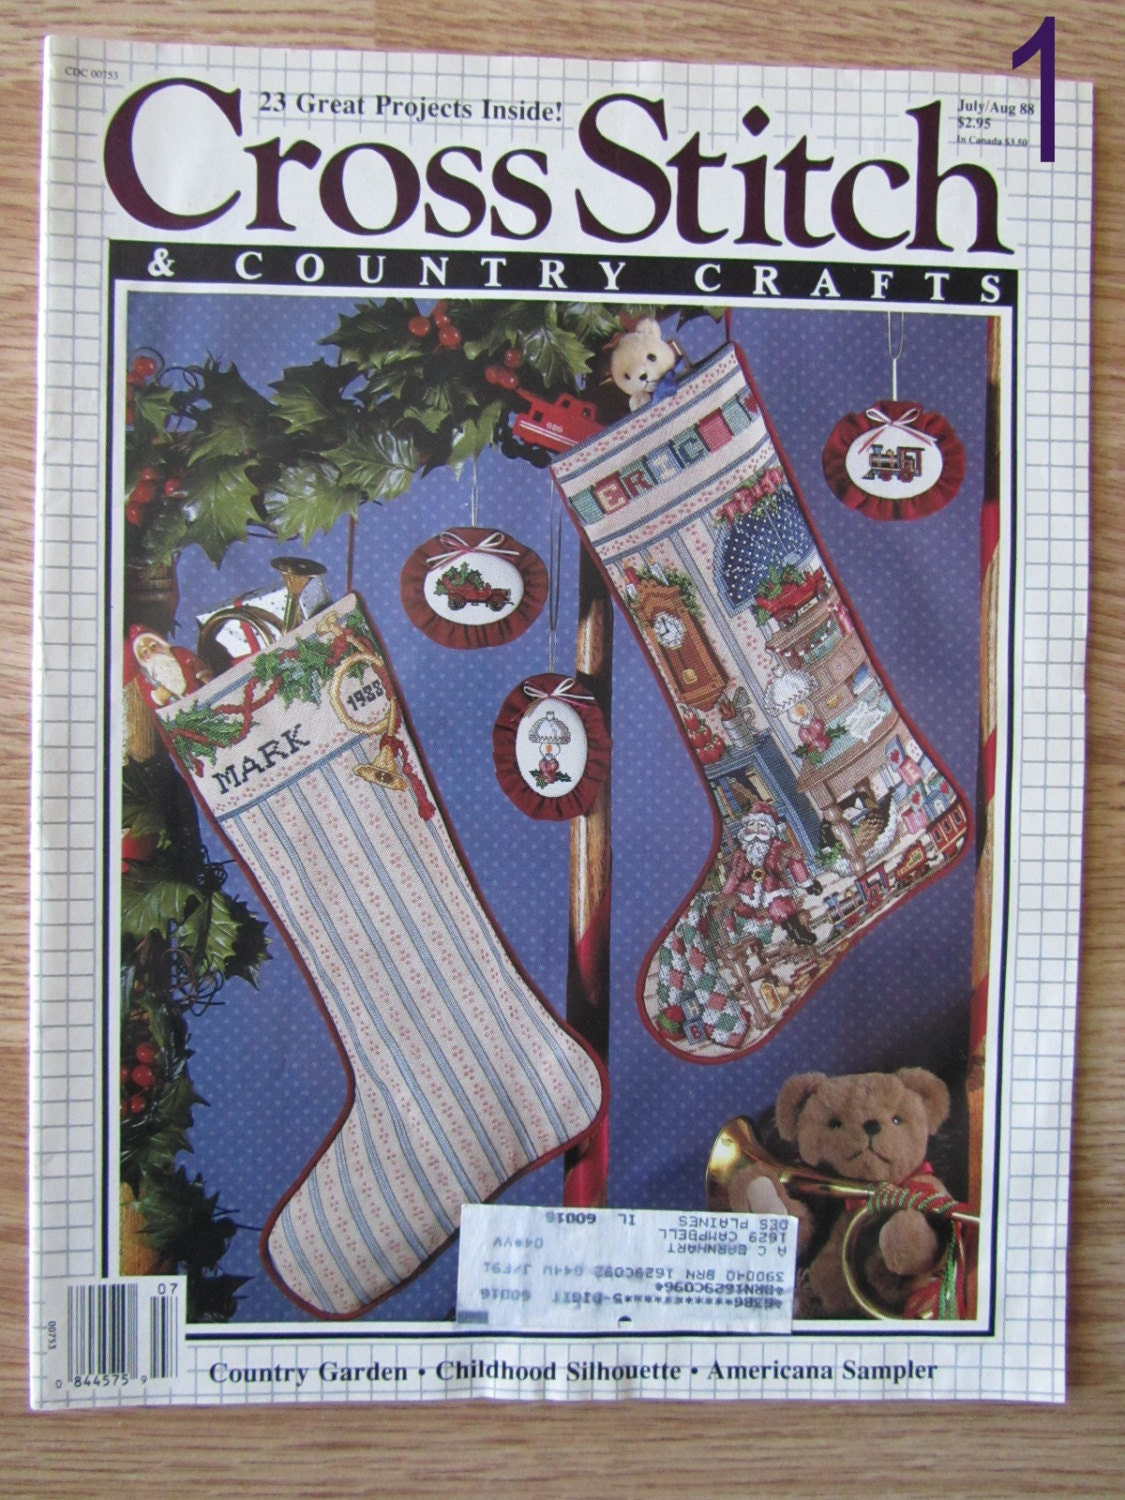 Cross stitch country crafts magazine back issues - Cross Stitch Country Crafts Vintage Magazine Issue July August 1988 Cross Stitch Needlework Magazine Issue August 1997 Cross Stitch